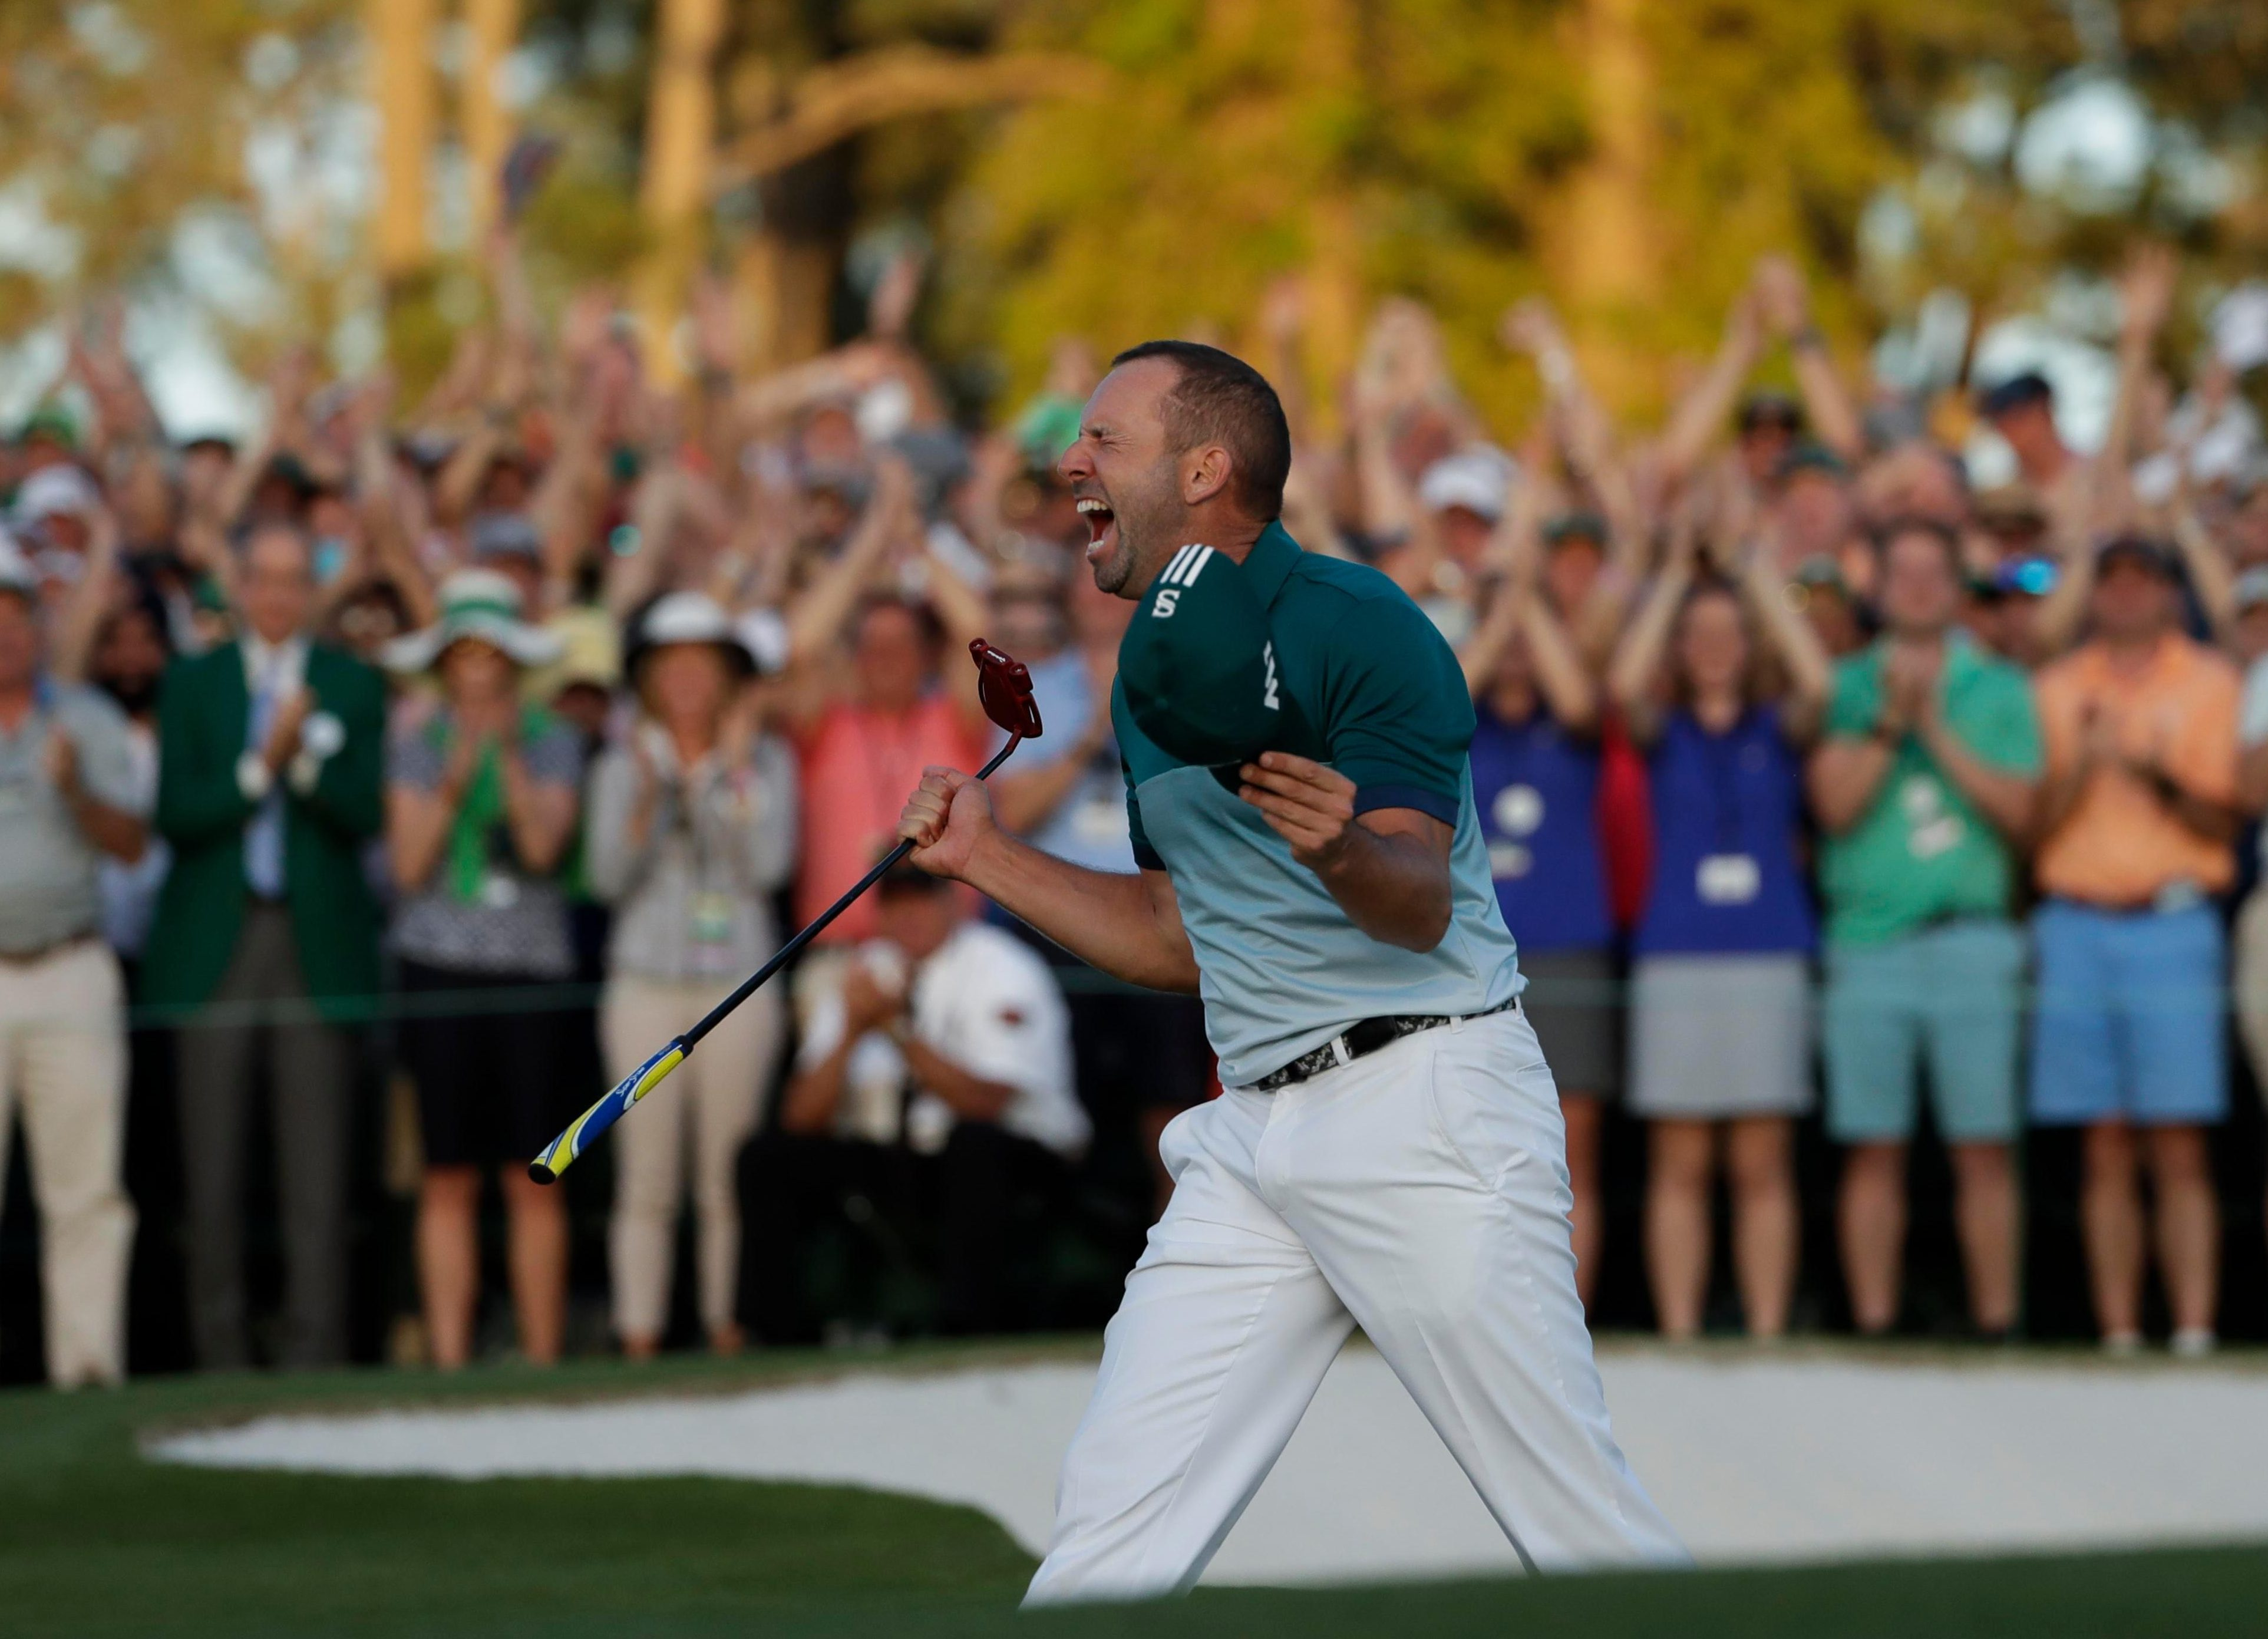 Sergio Garcia recalls how he stayed calm when it mattered most at the Masters last year